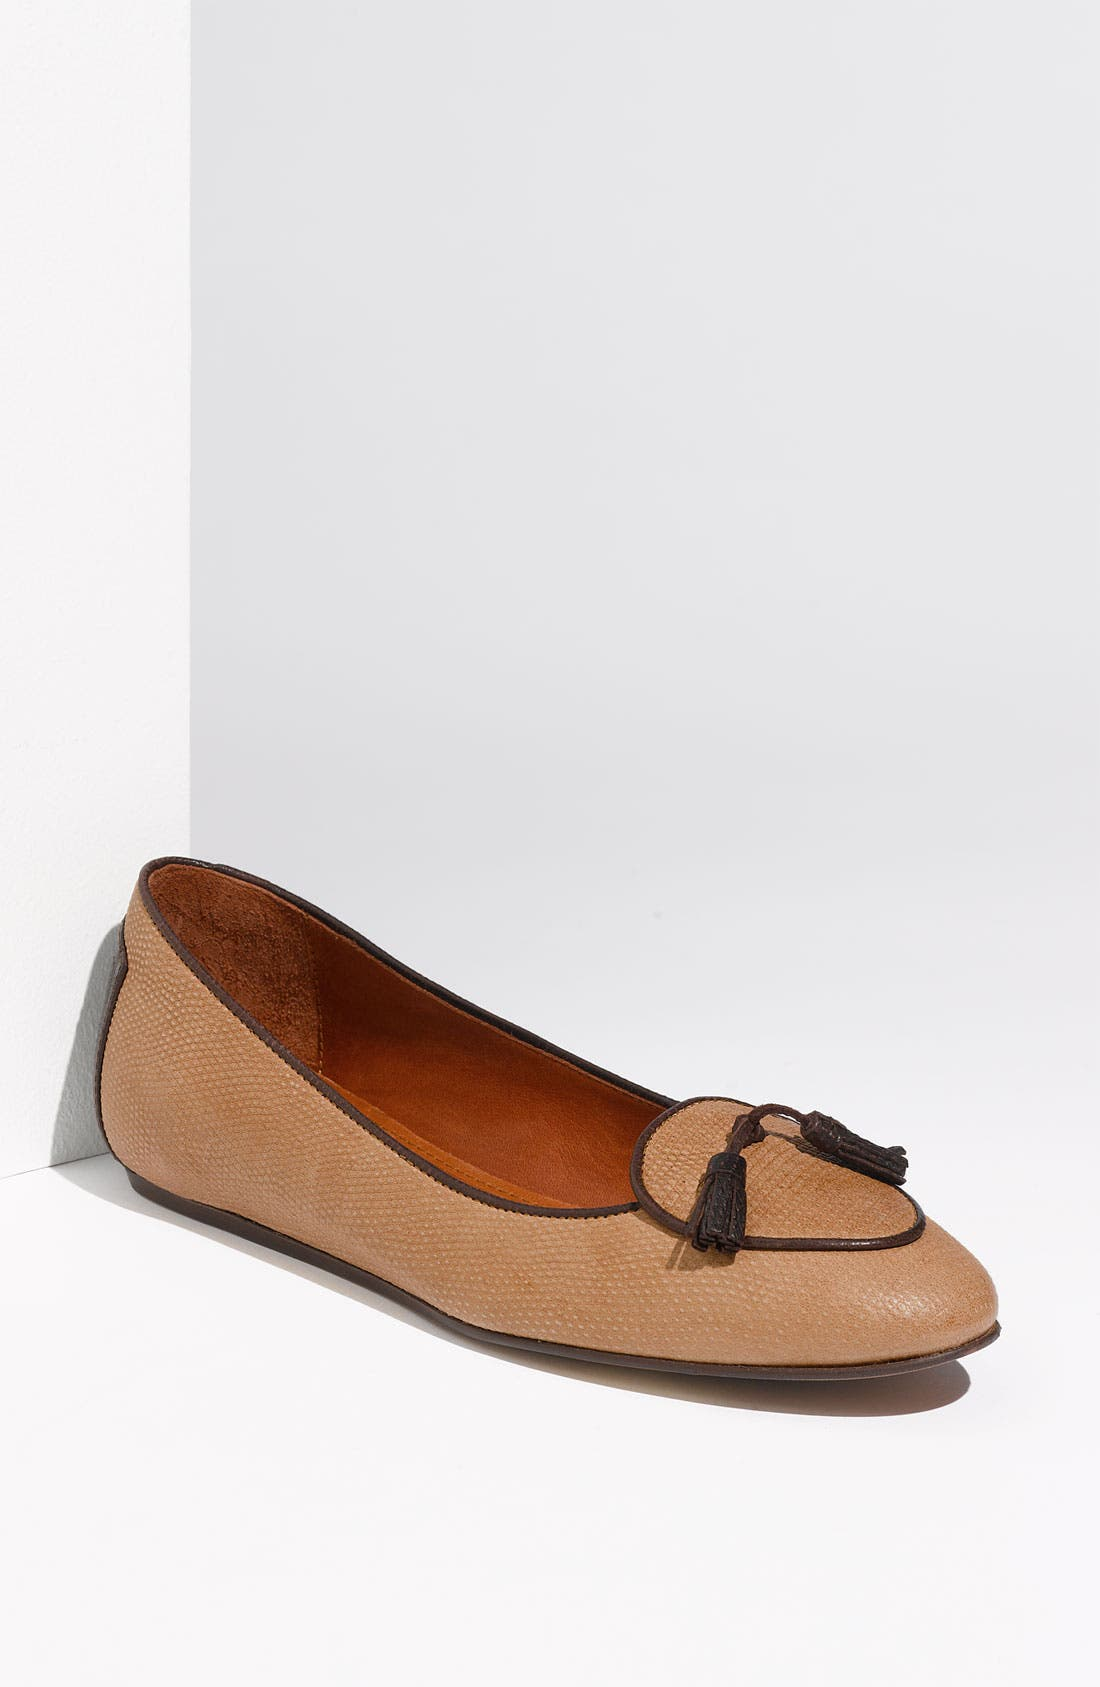 Alternate Image 1 Selected - Lanvin Tassel Loafer Ballerina Flat